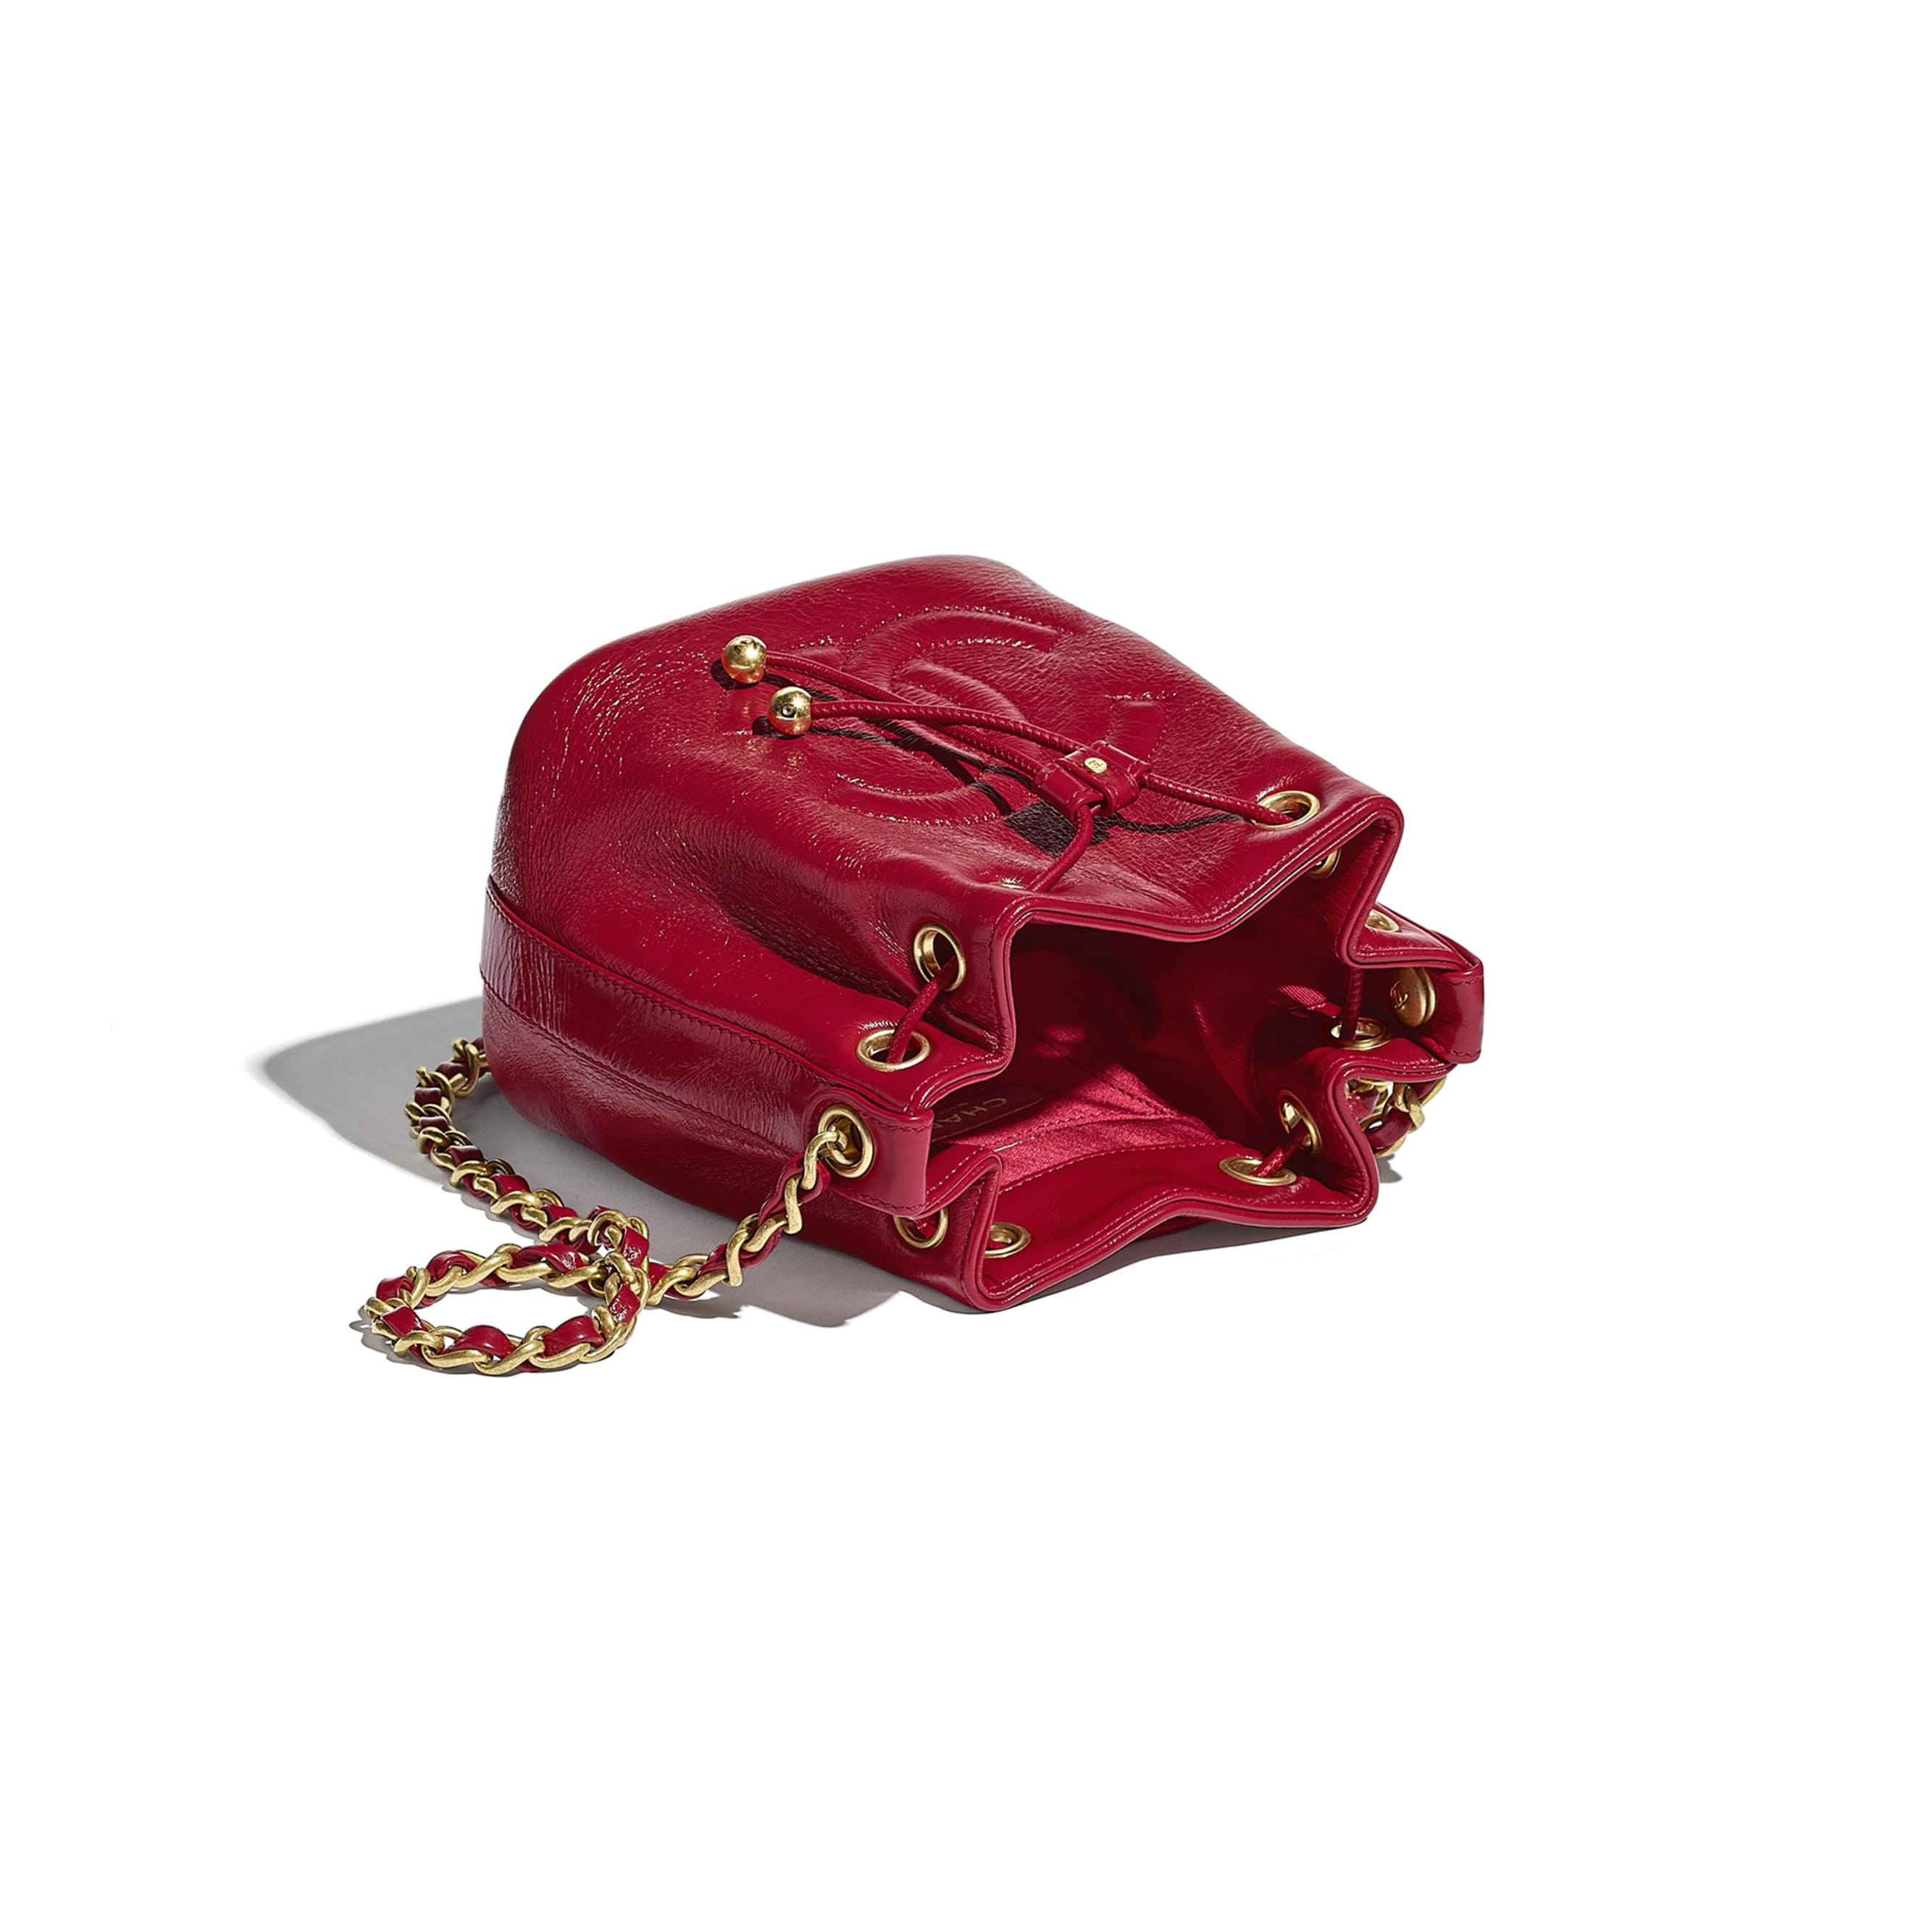 Drawstring Bag - Red - Shiny Aged Calfskin & Gold-Tone Metal - CHANEL - Other view - see standard sized version